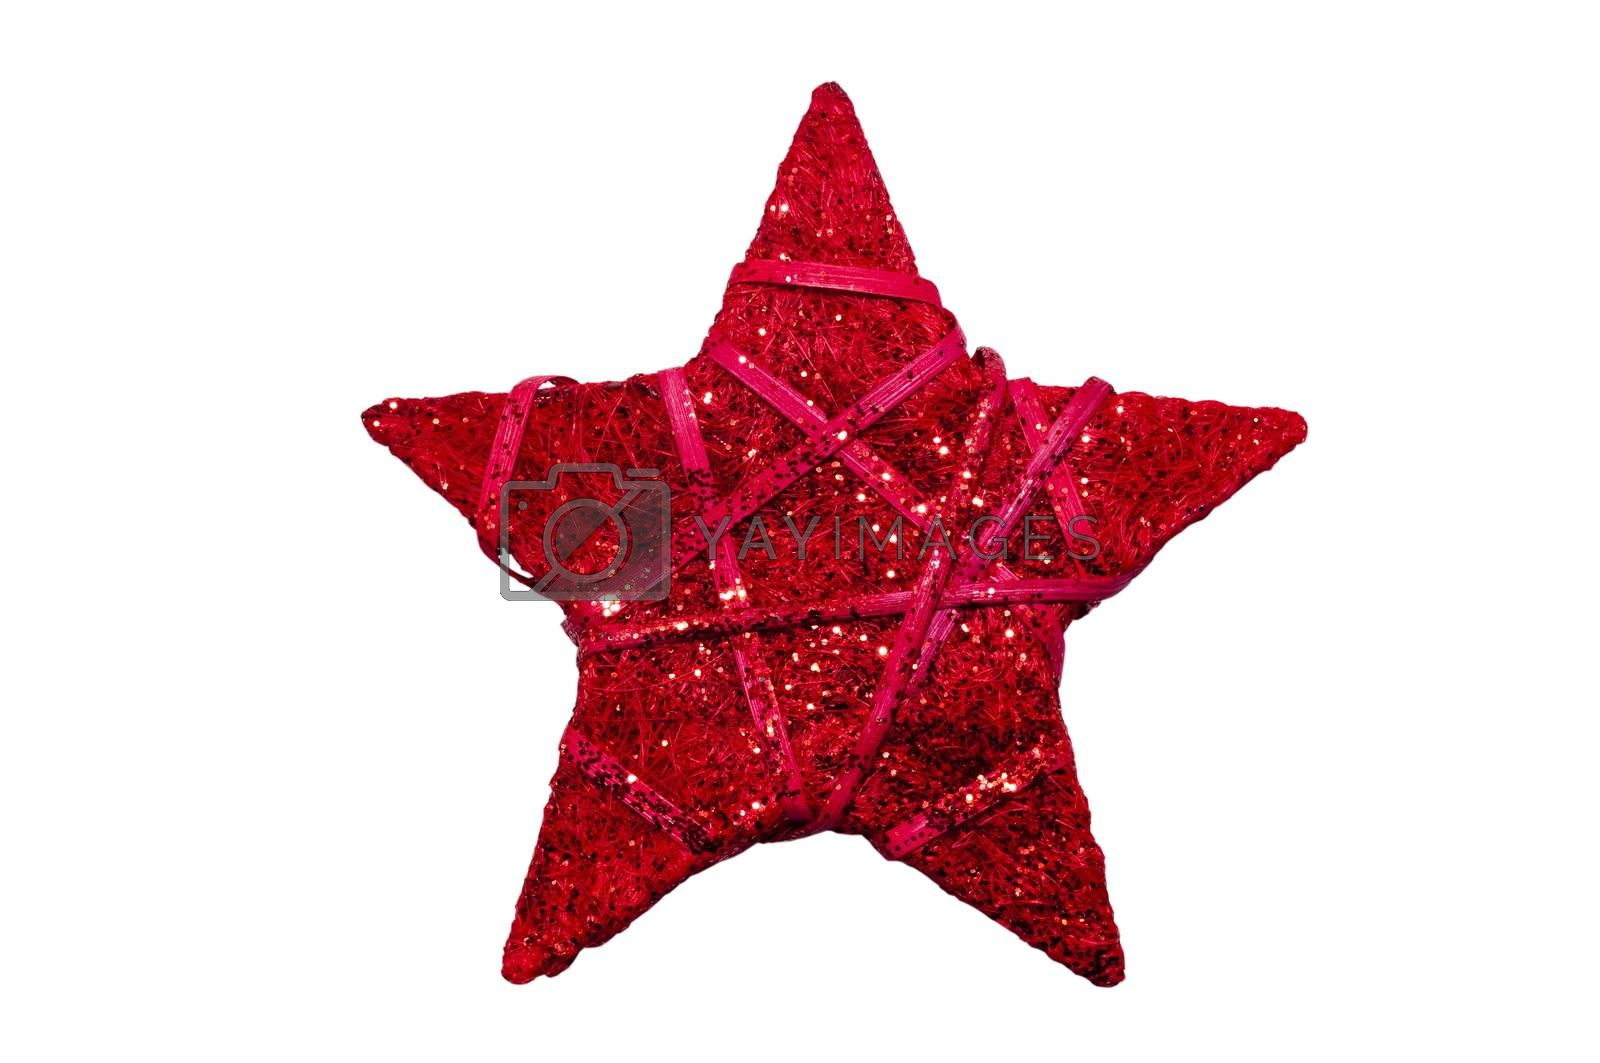 red Christmas star isolated on a white background